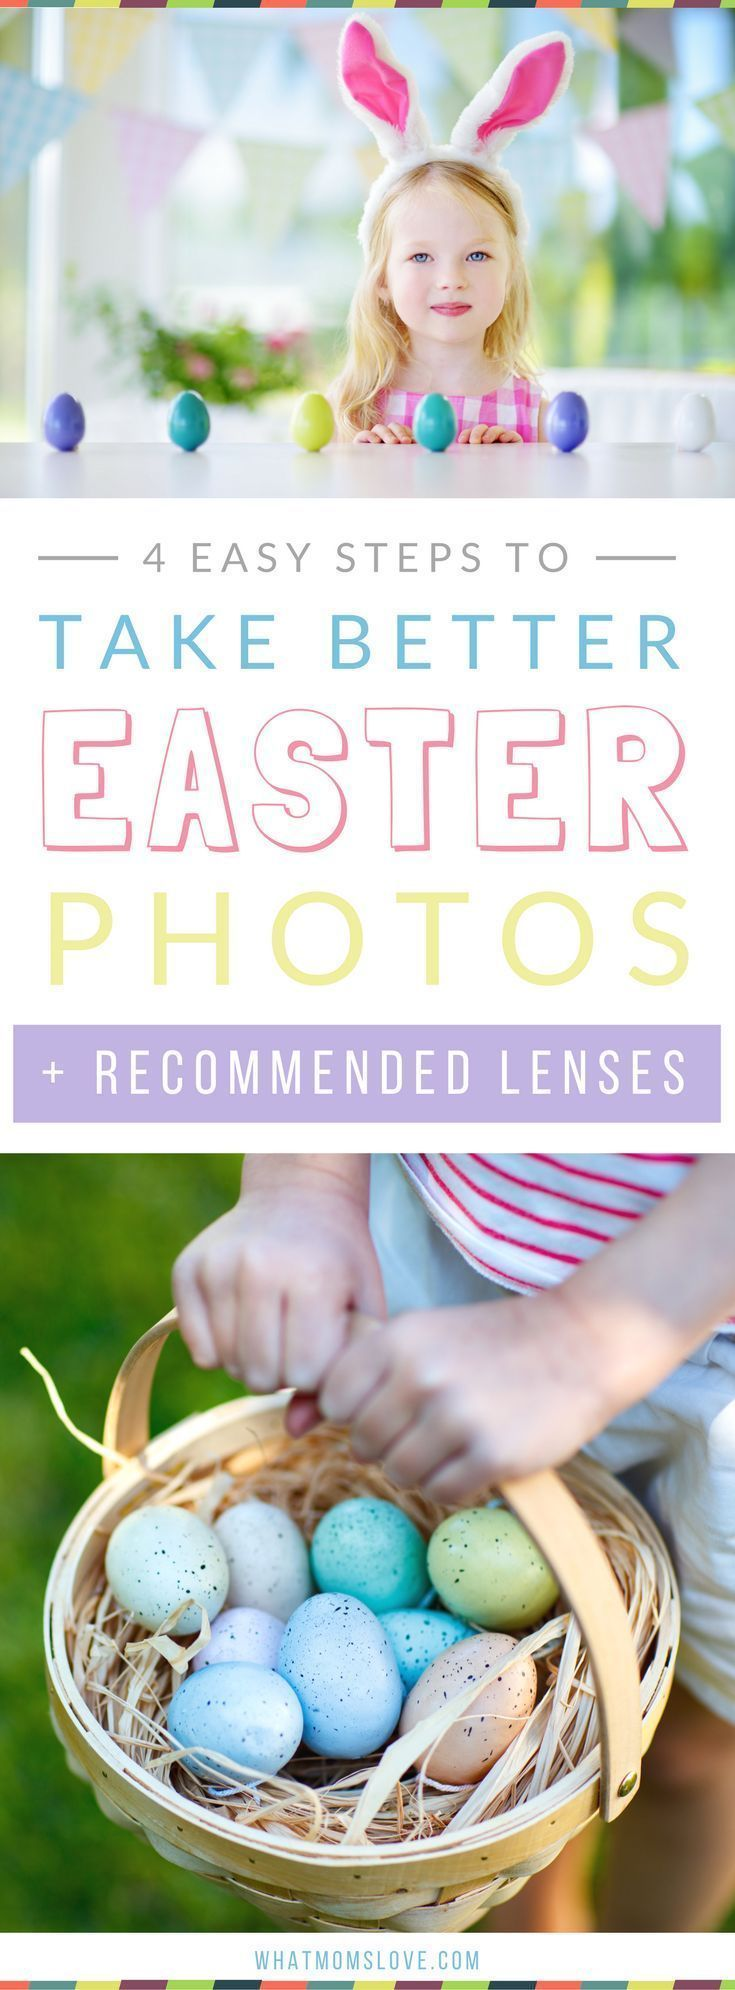 Easter Photography Tips and Tutorial to get that beautiful blurry background in your photos - perfect for Easter photos of your baby, toddler, big kid or family. Learn how to get a blurred background in 4 easy steps plus recommended lenses that are Canon and Nikon compatible. Use these steps for your pictures whether you use a DSLR or a point and shoot. With bonus tips to achieve this effect on your iPhone! #iphonetips